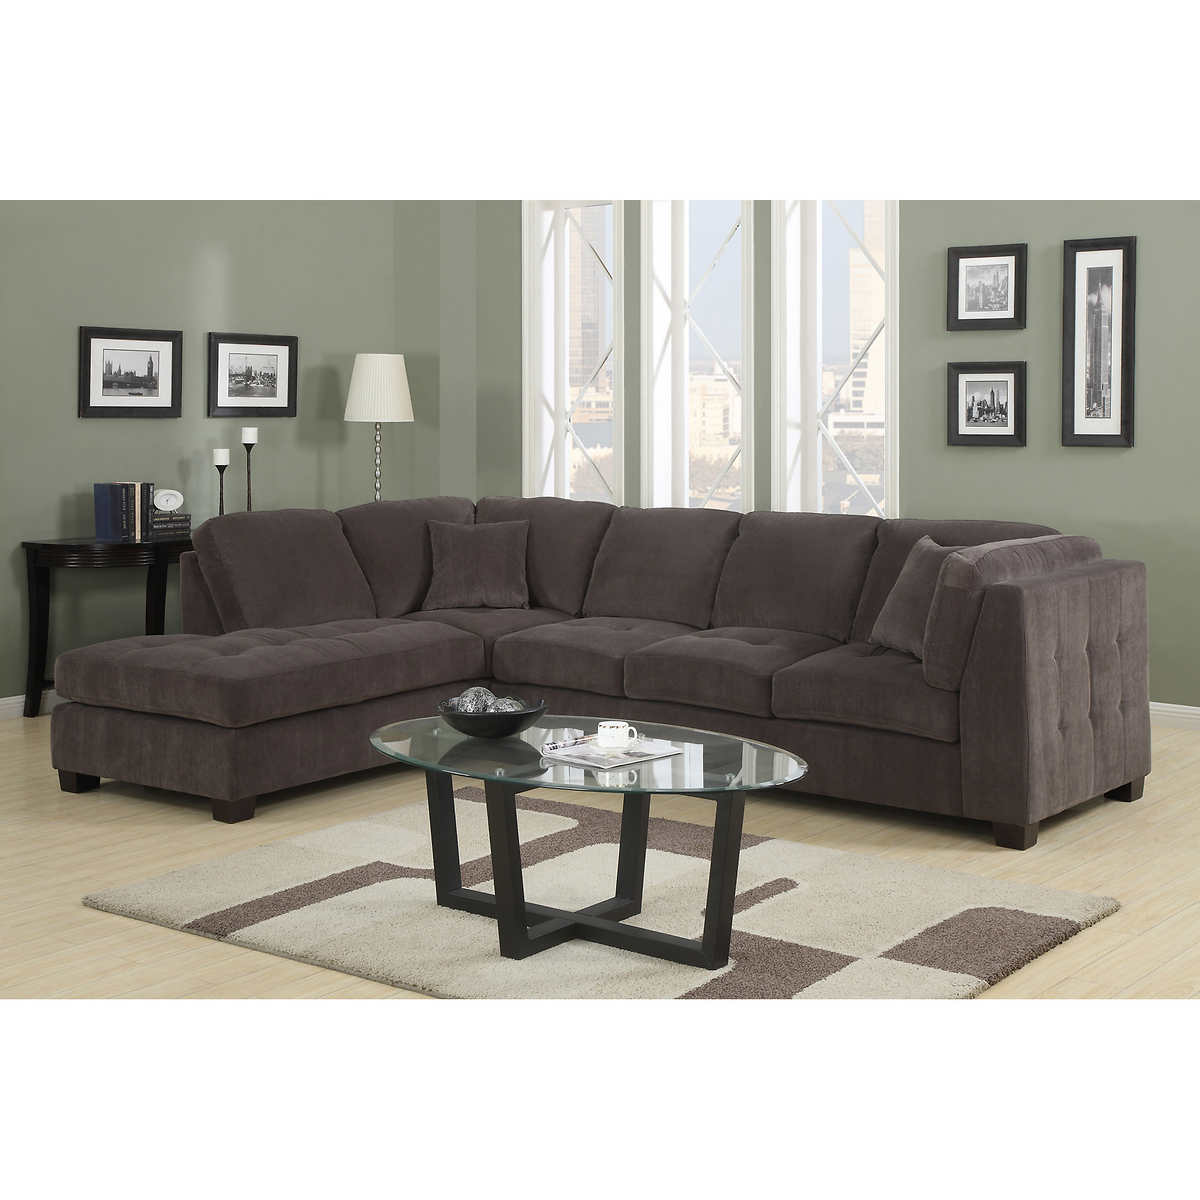 Gray Sectional Sofa Costco Gray Sectional Sofa Costco